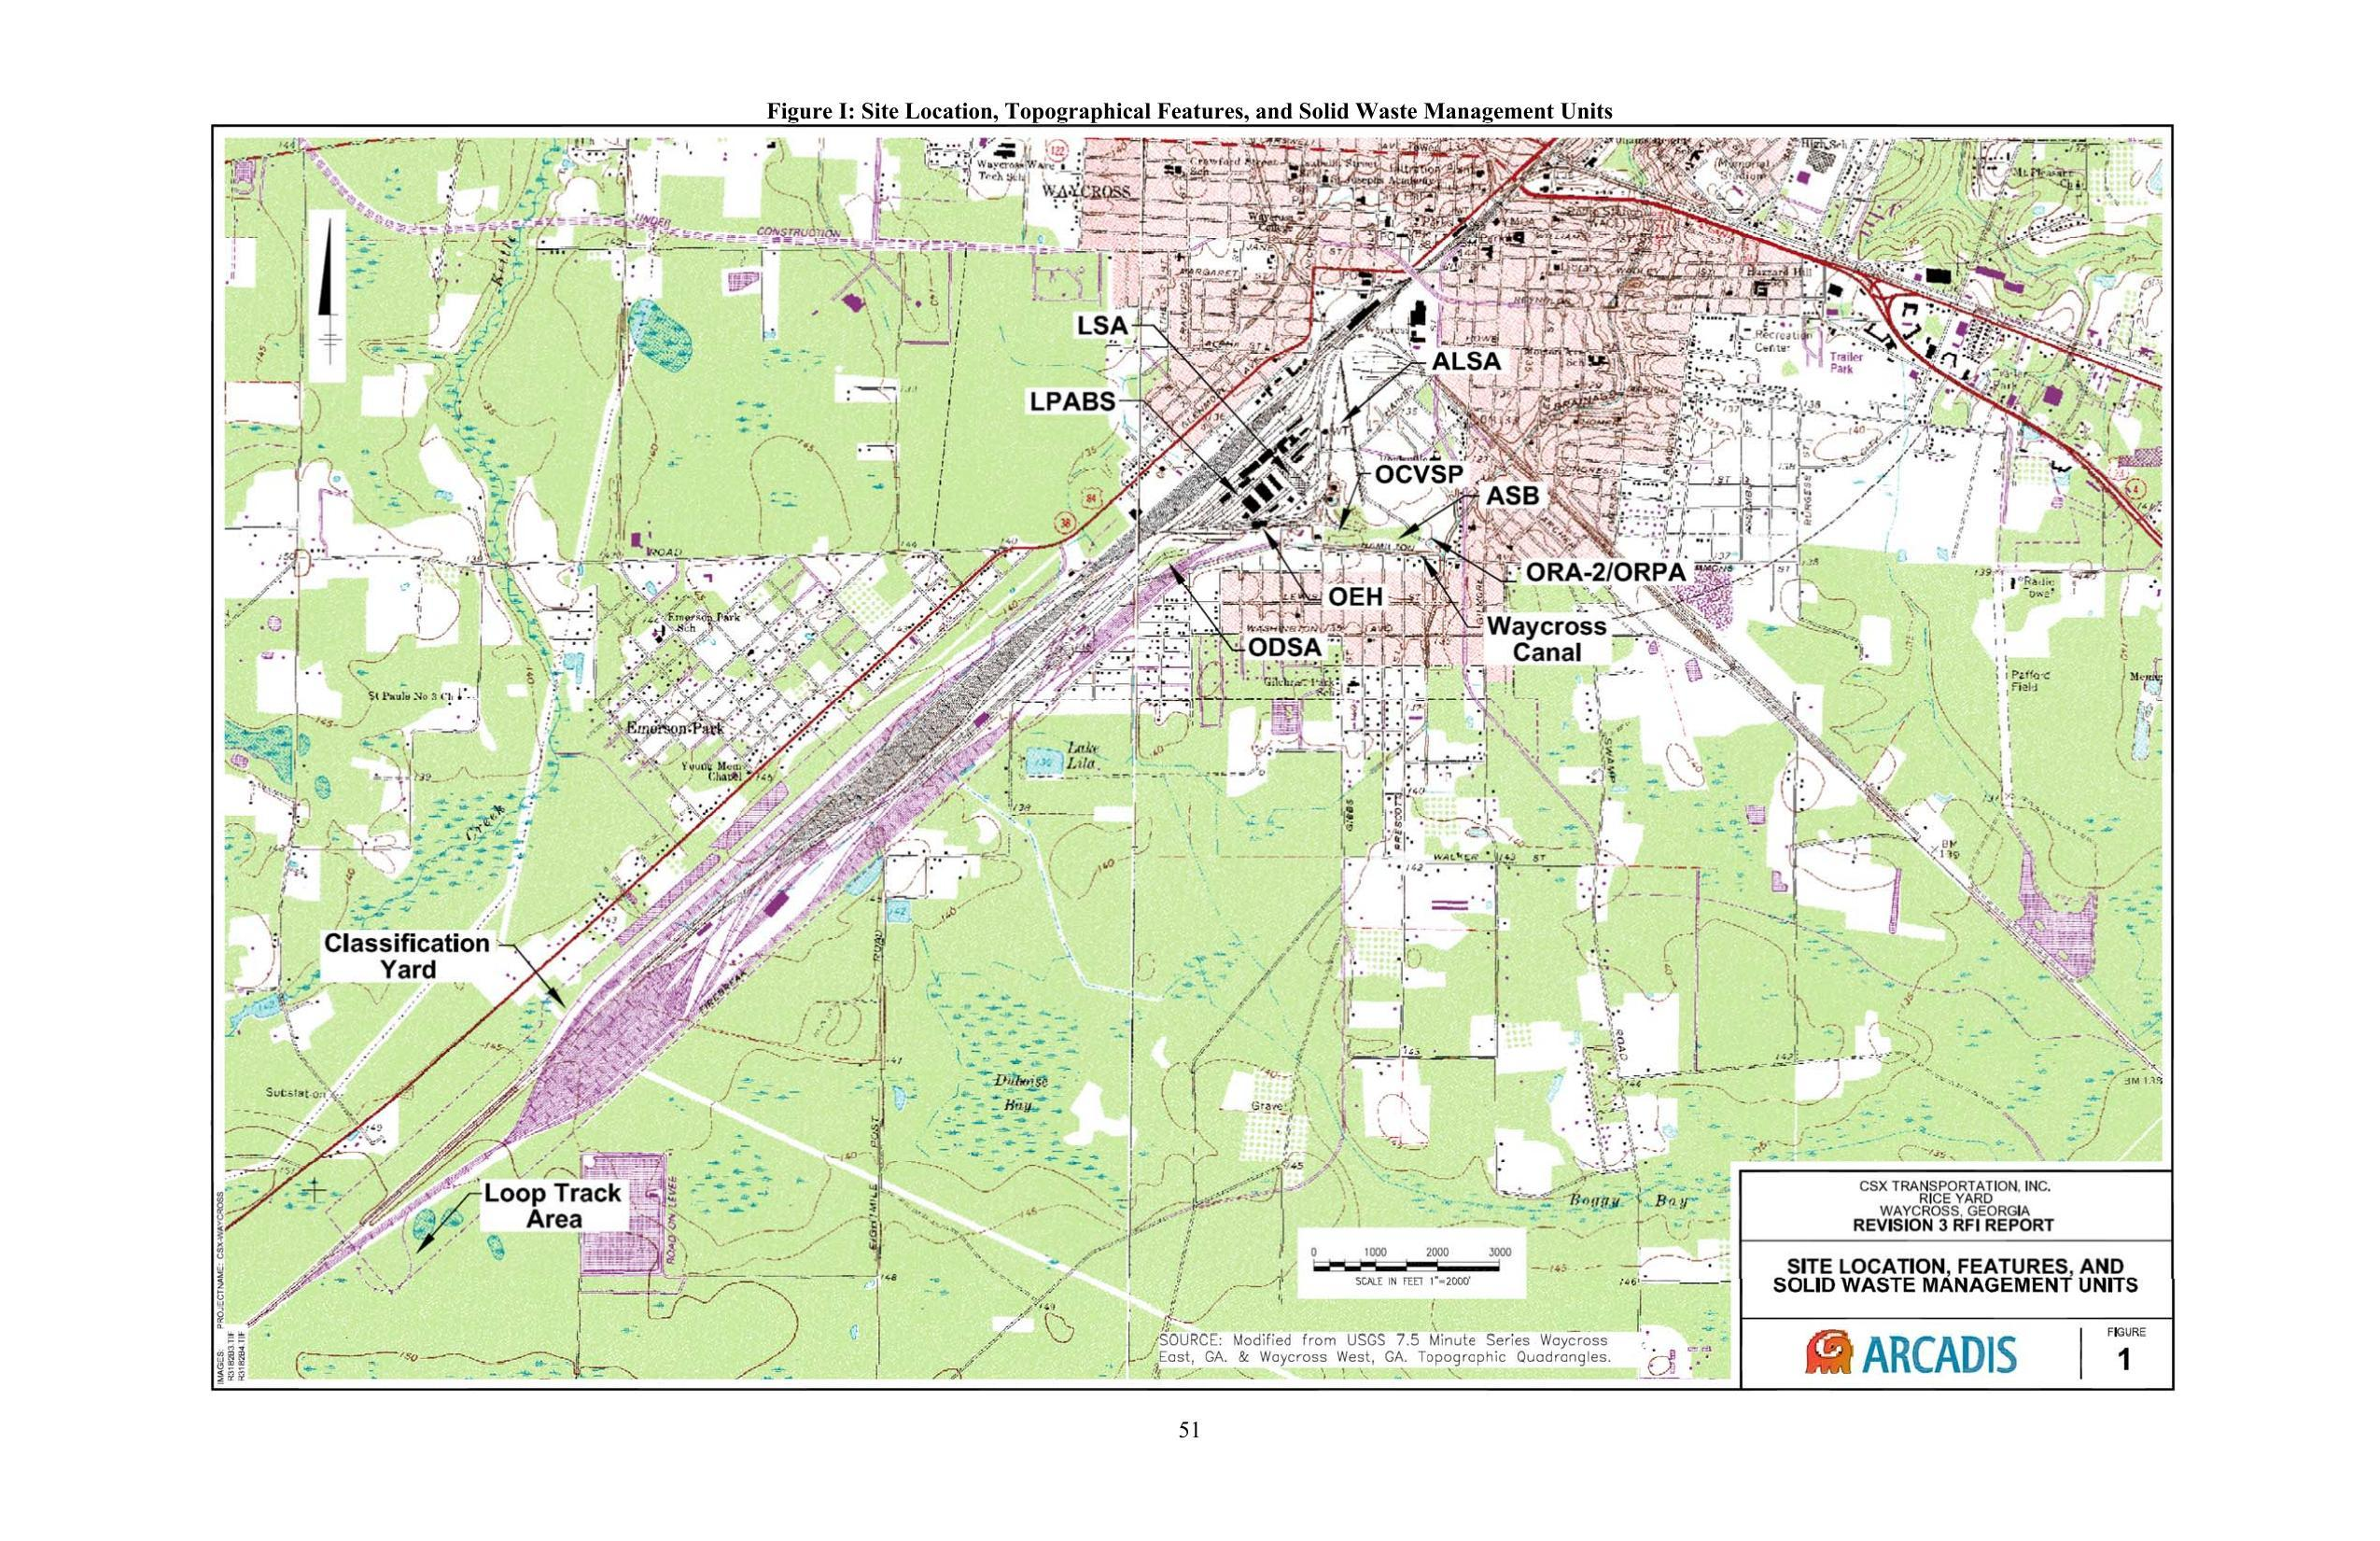 2550x1651 Figure I: Site Location, Topographical Features, and Solid Waste Management Units, Pages, in Public Health Assessment of Rice Rail Yard, Waycross, GA, by John S. Quarterman, for WWALS.net, 7 June 2018